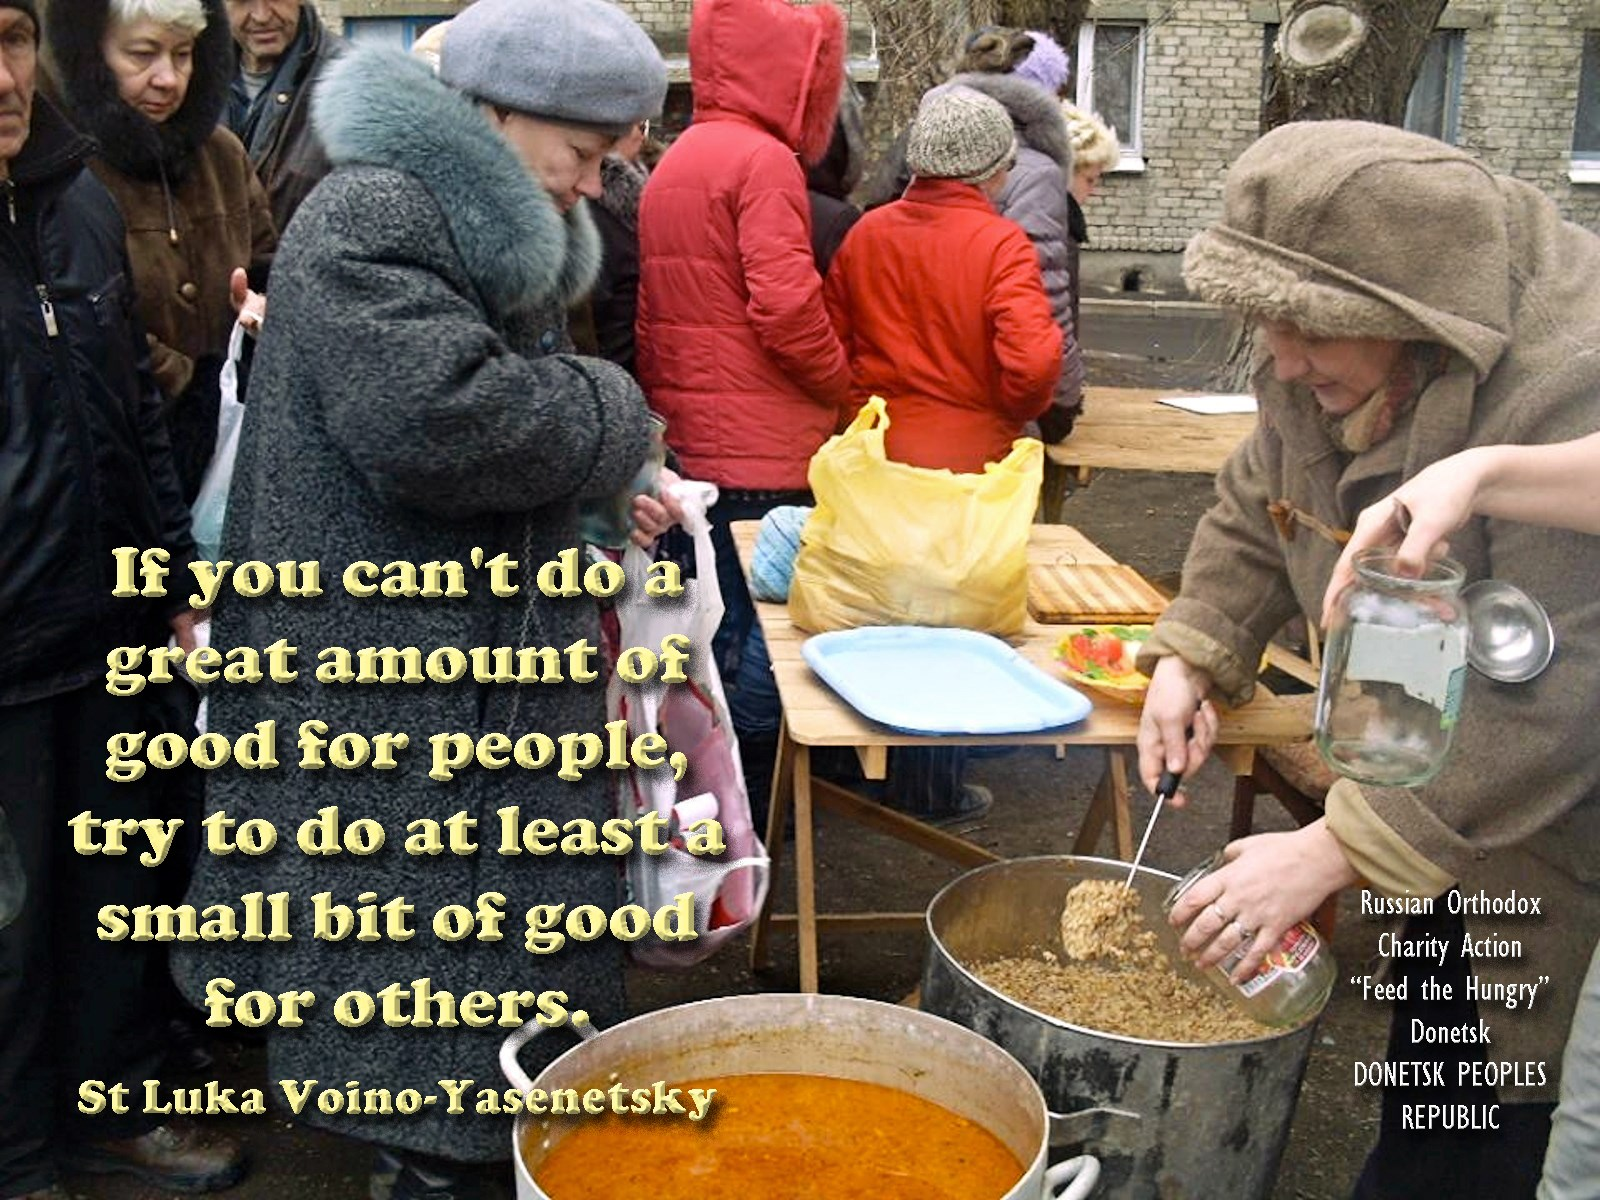 00 charity action feed the hungry in donetsk. st luka. 280815